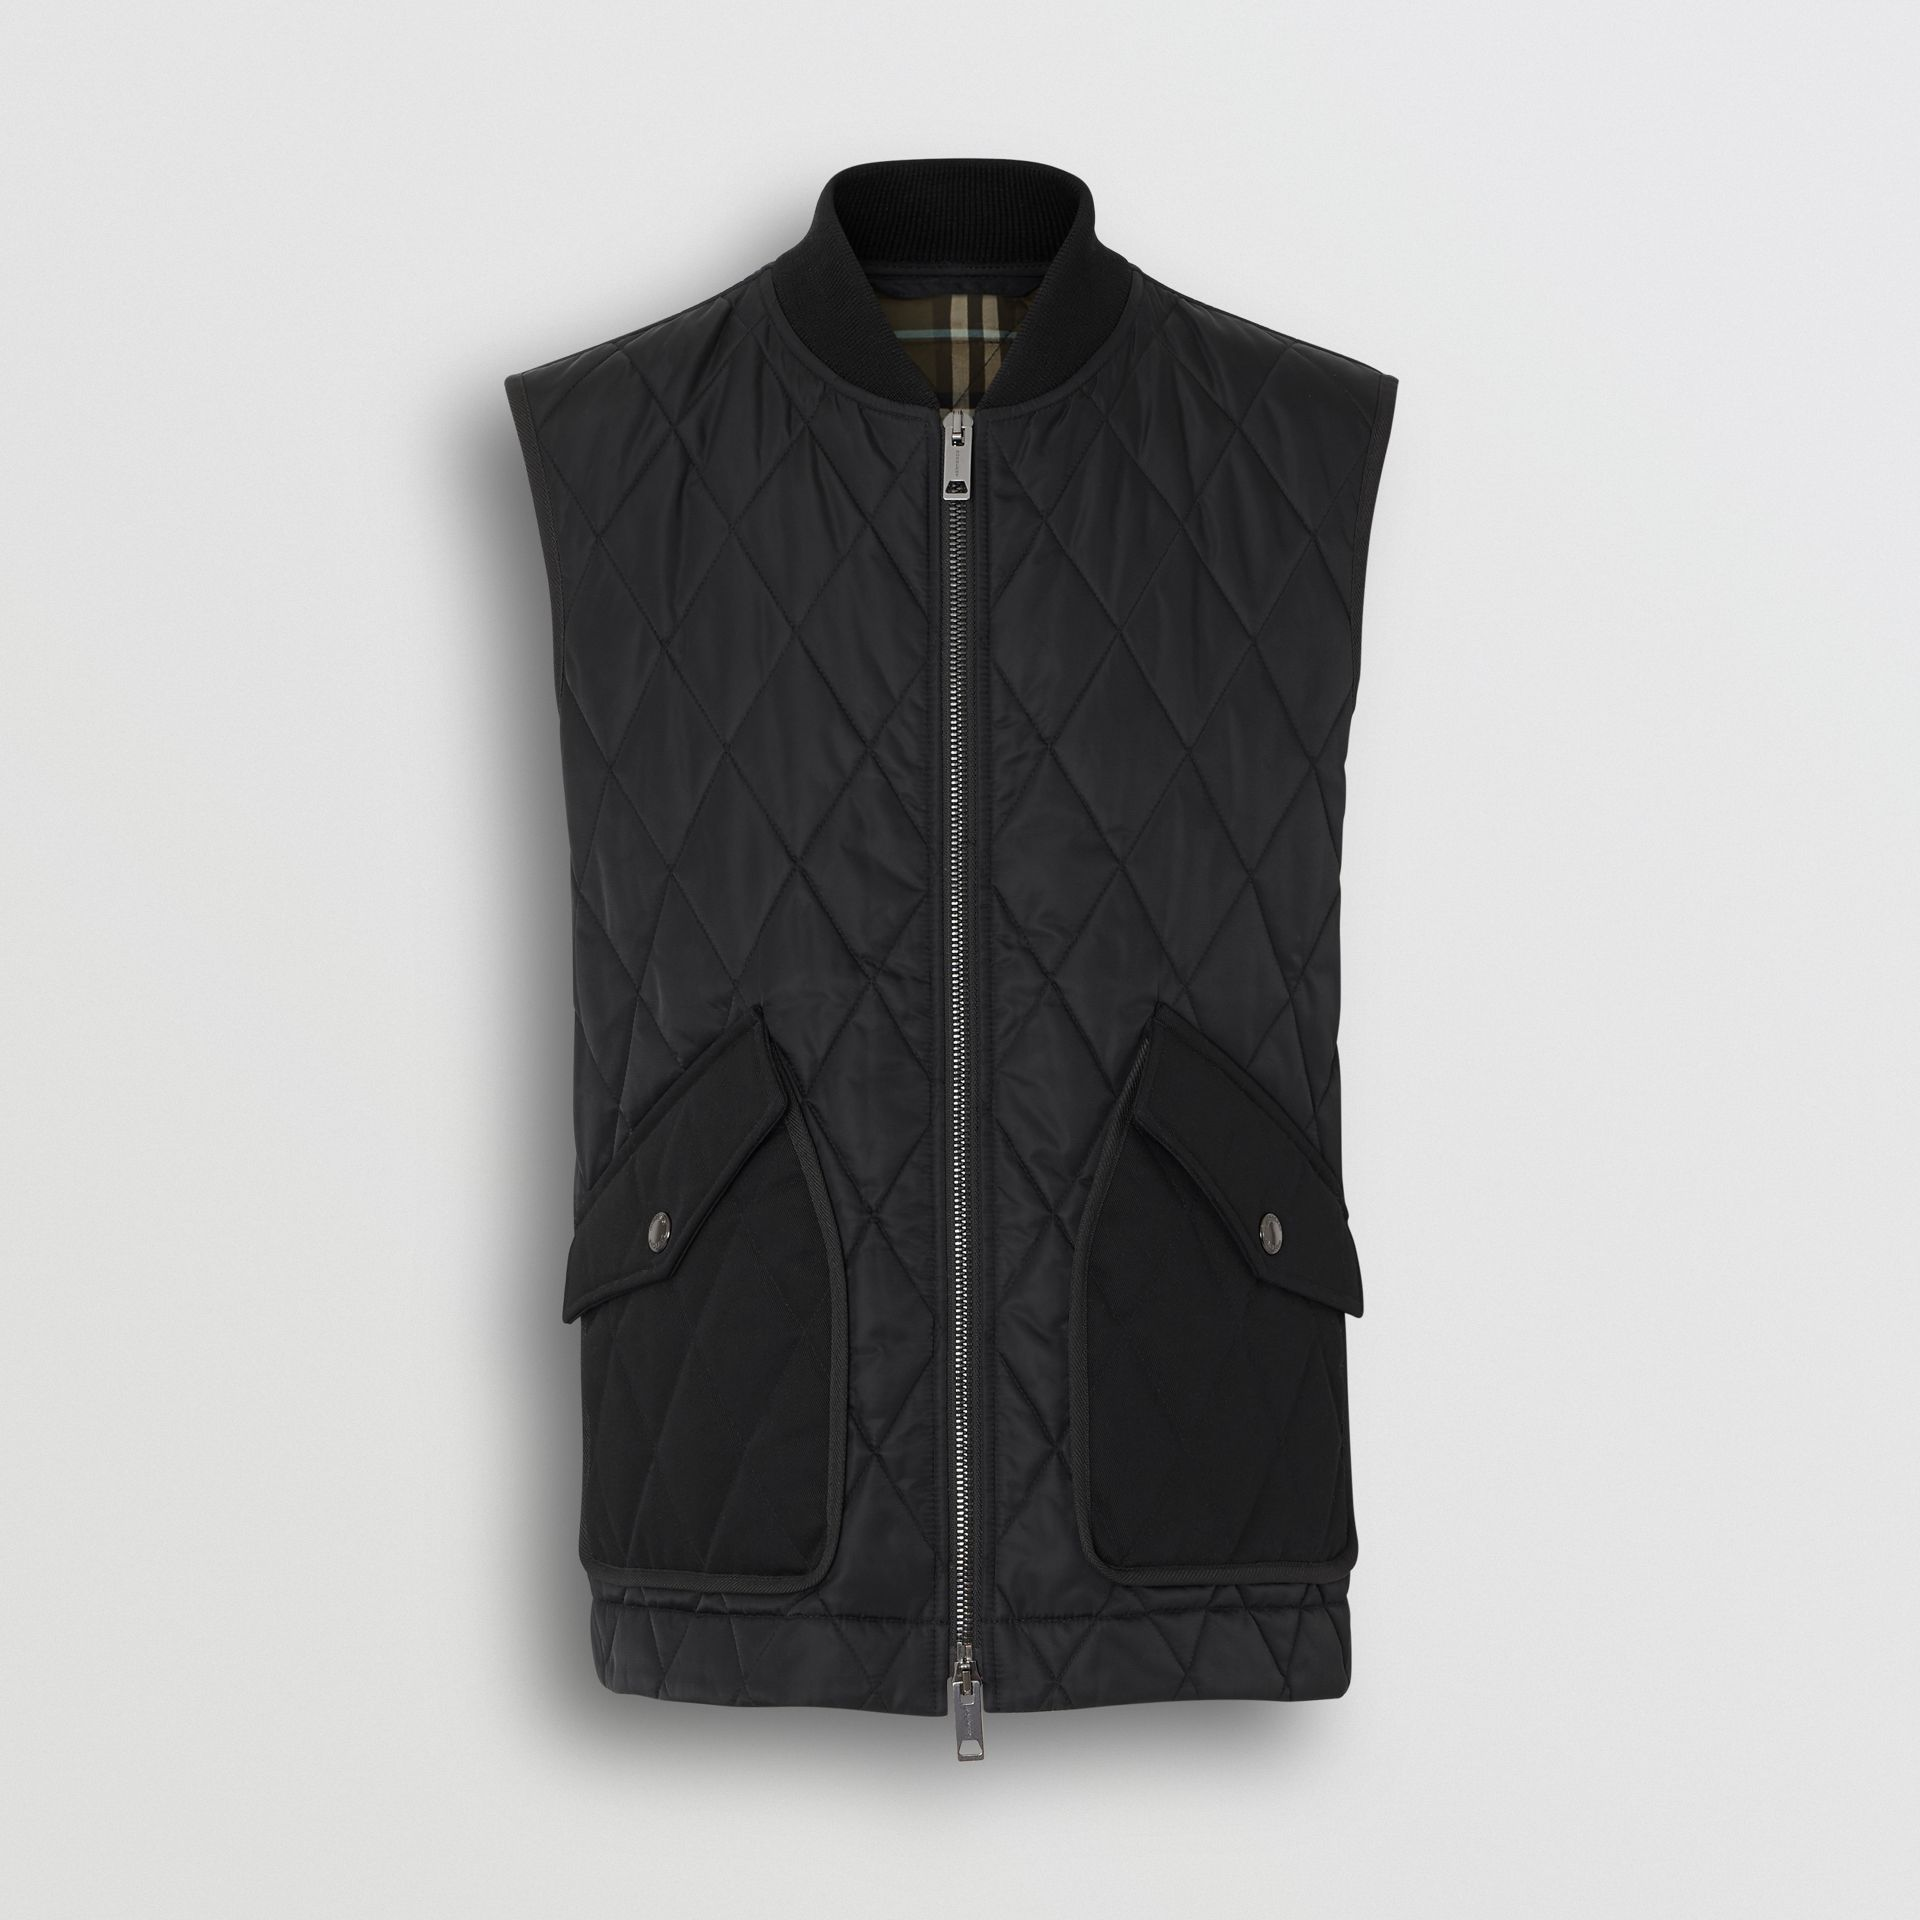 Monogram Motif Diamond Quilted Gilet in Black - Men | Burberry Singapore - gallery image 3